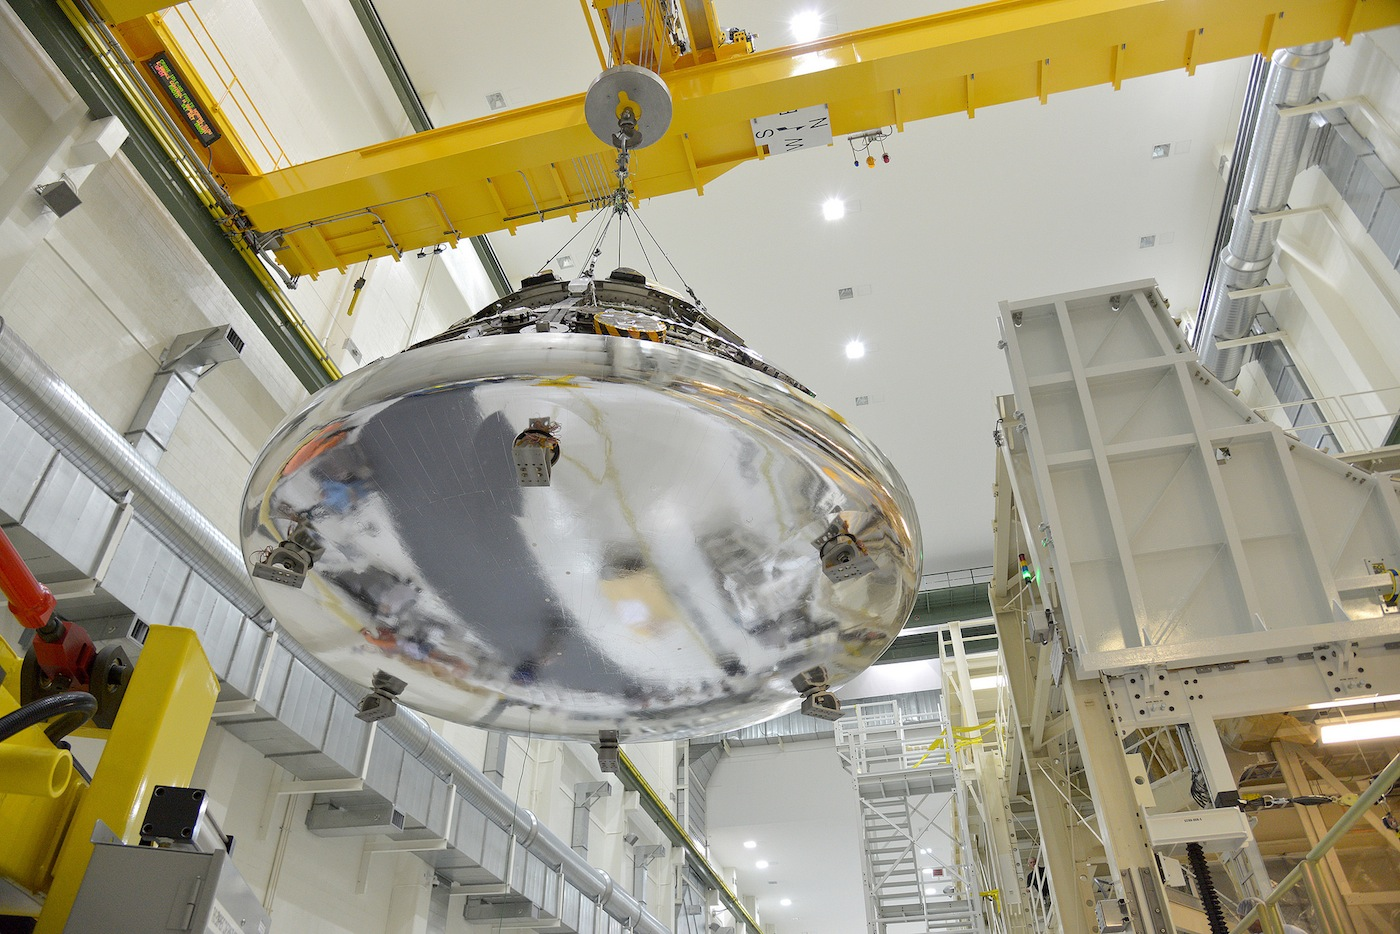 The Orion crew module for Exploration Flight Test 1 -- set for launch Dec. 4 -- is seen before attachment to its service module. The heat shield is covered in a reflective silver tape that protects it from the extreme cold temperatures of space. Credit: NASA